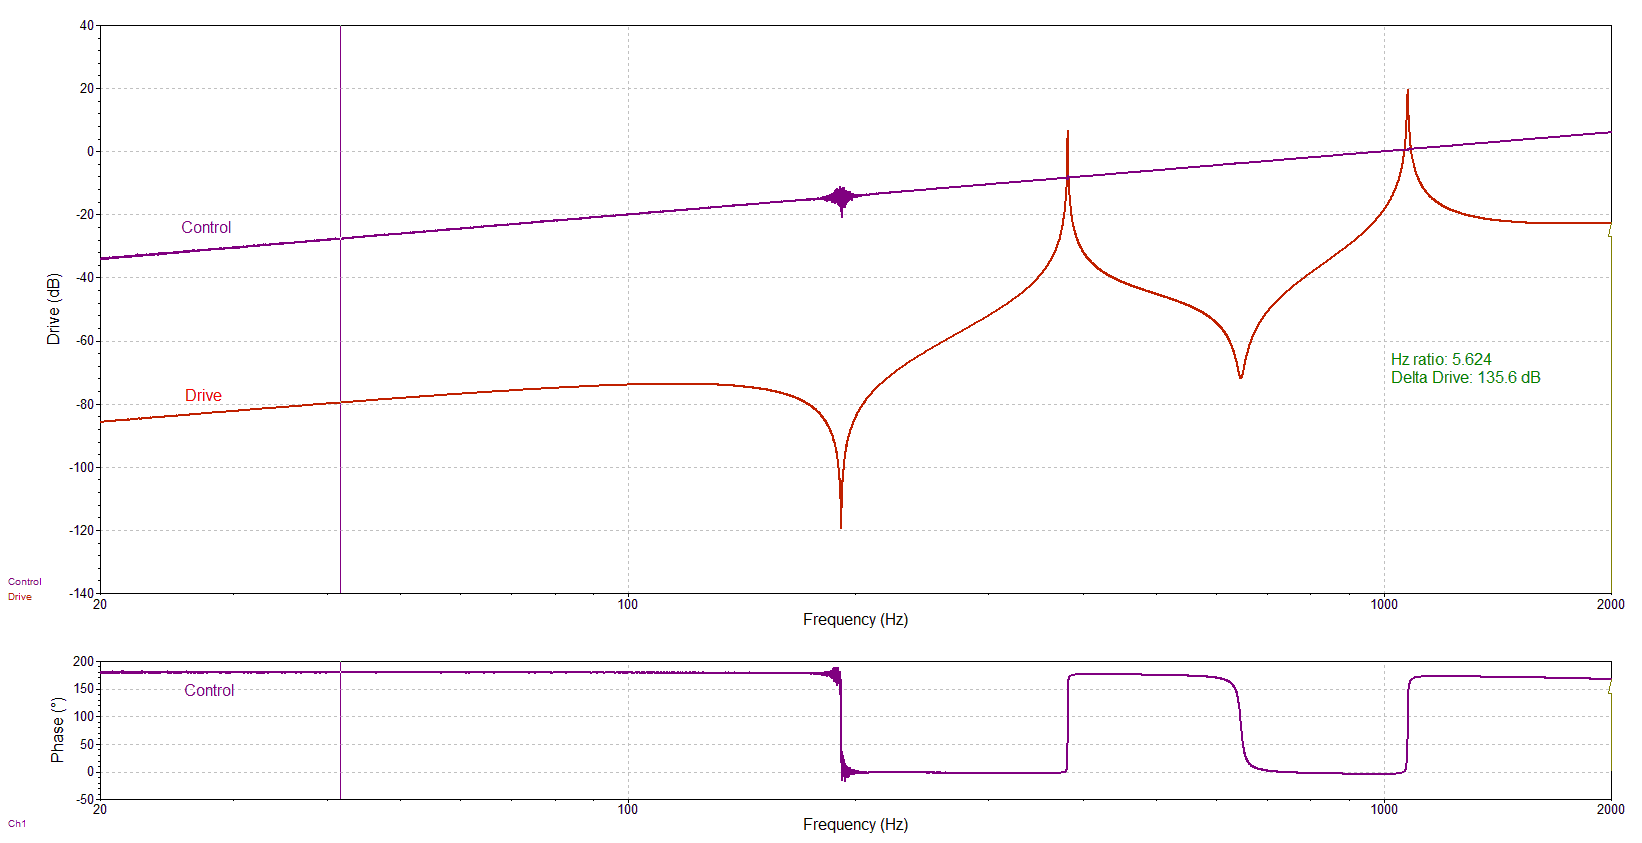 Figure 25: VR9500 Control and Drive signals during a swept-sine test; dynamic range exceeds 135 dB. The test profile has a change in demand amplitude (0.02 V to 2 V) because the dynamic range of VR9500 exceeded the dynamic range of challenge filter.